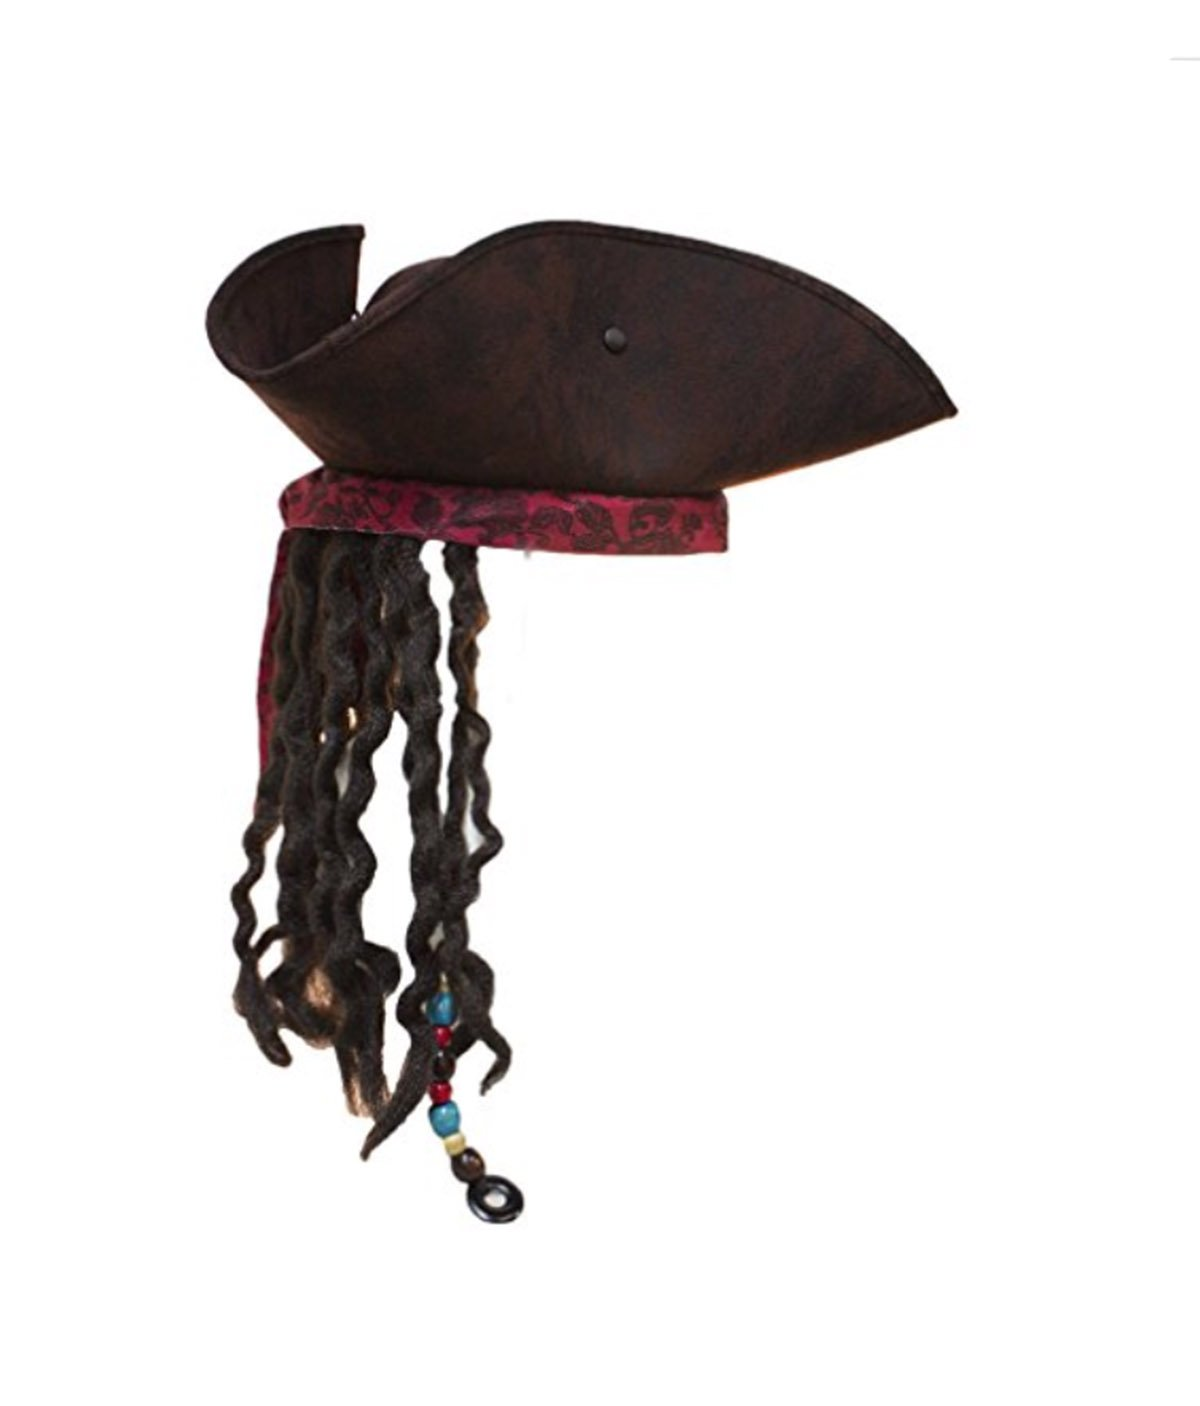 Jacobson Hat Company Men's Caribbean Pirate Hat with Braids, Brown, Adjustable